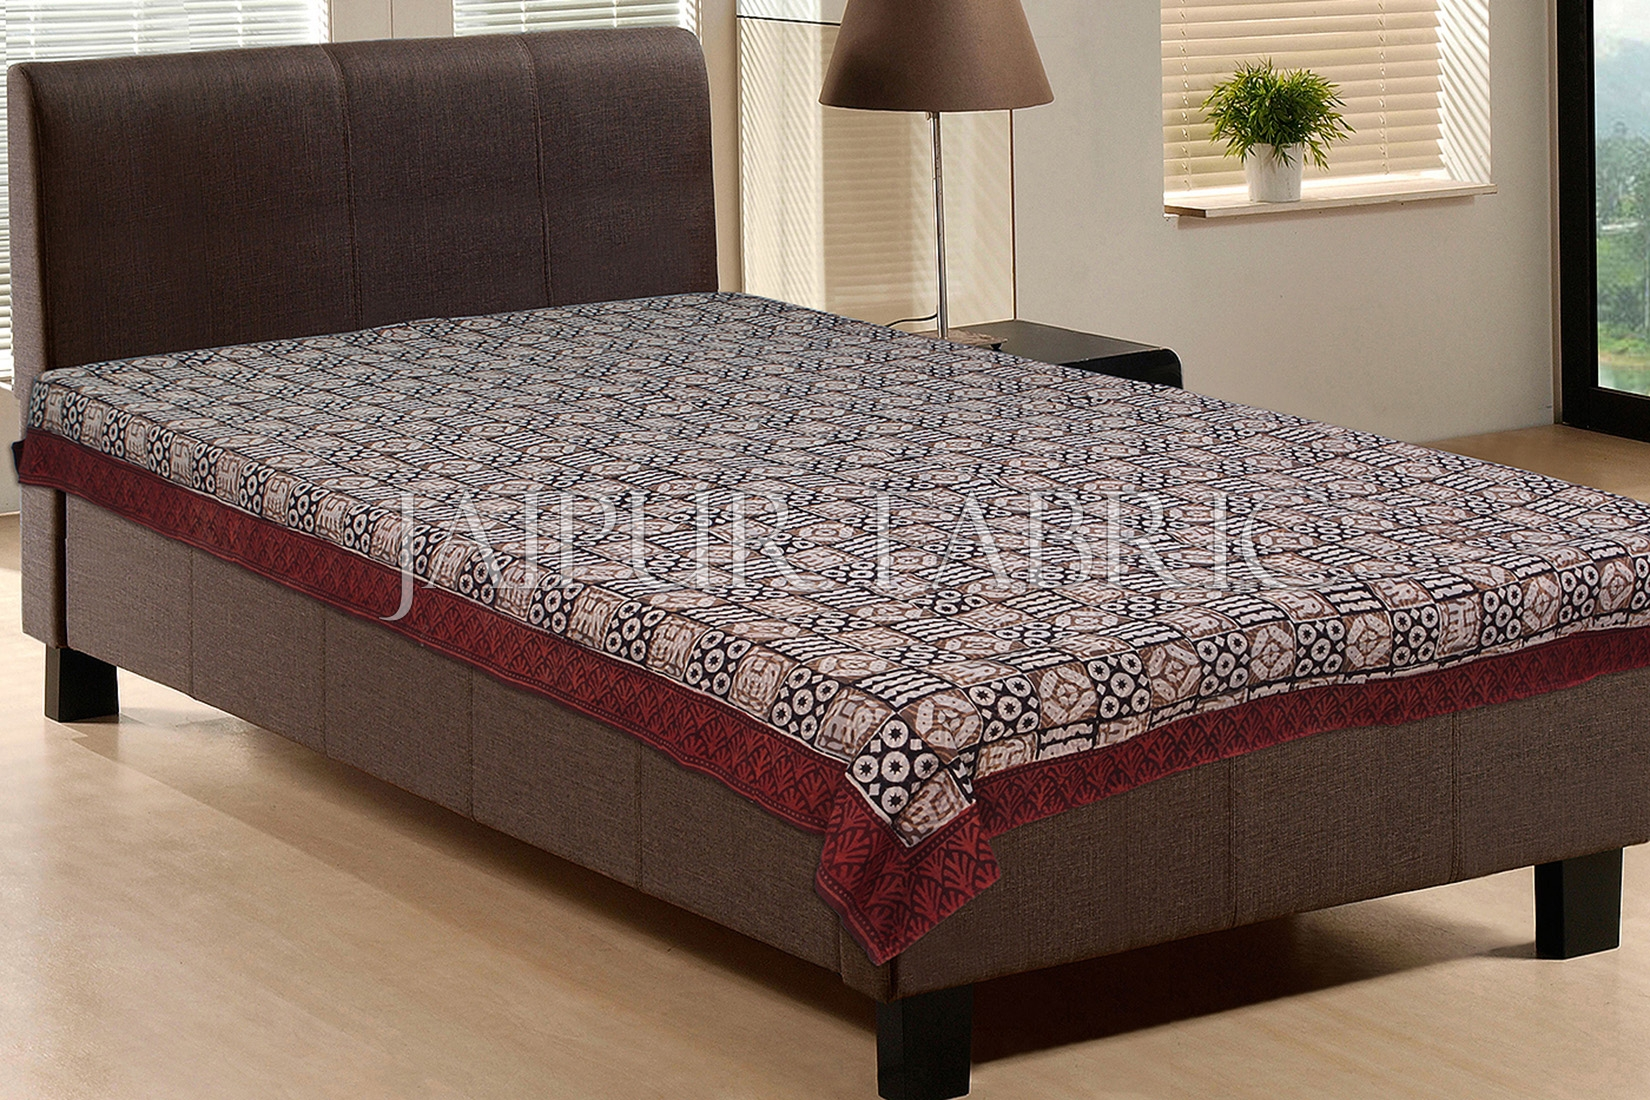 Square Prints With Red Border Single Cotton Bed Sheet